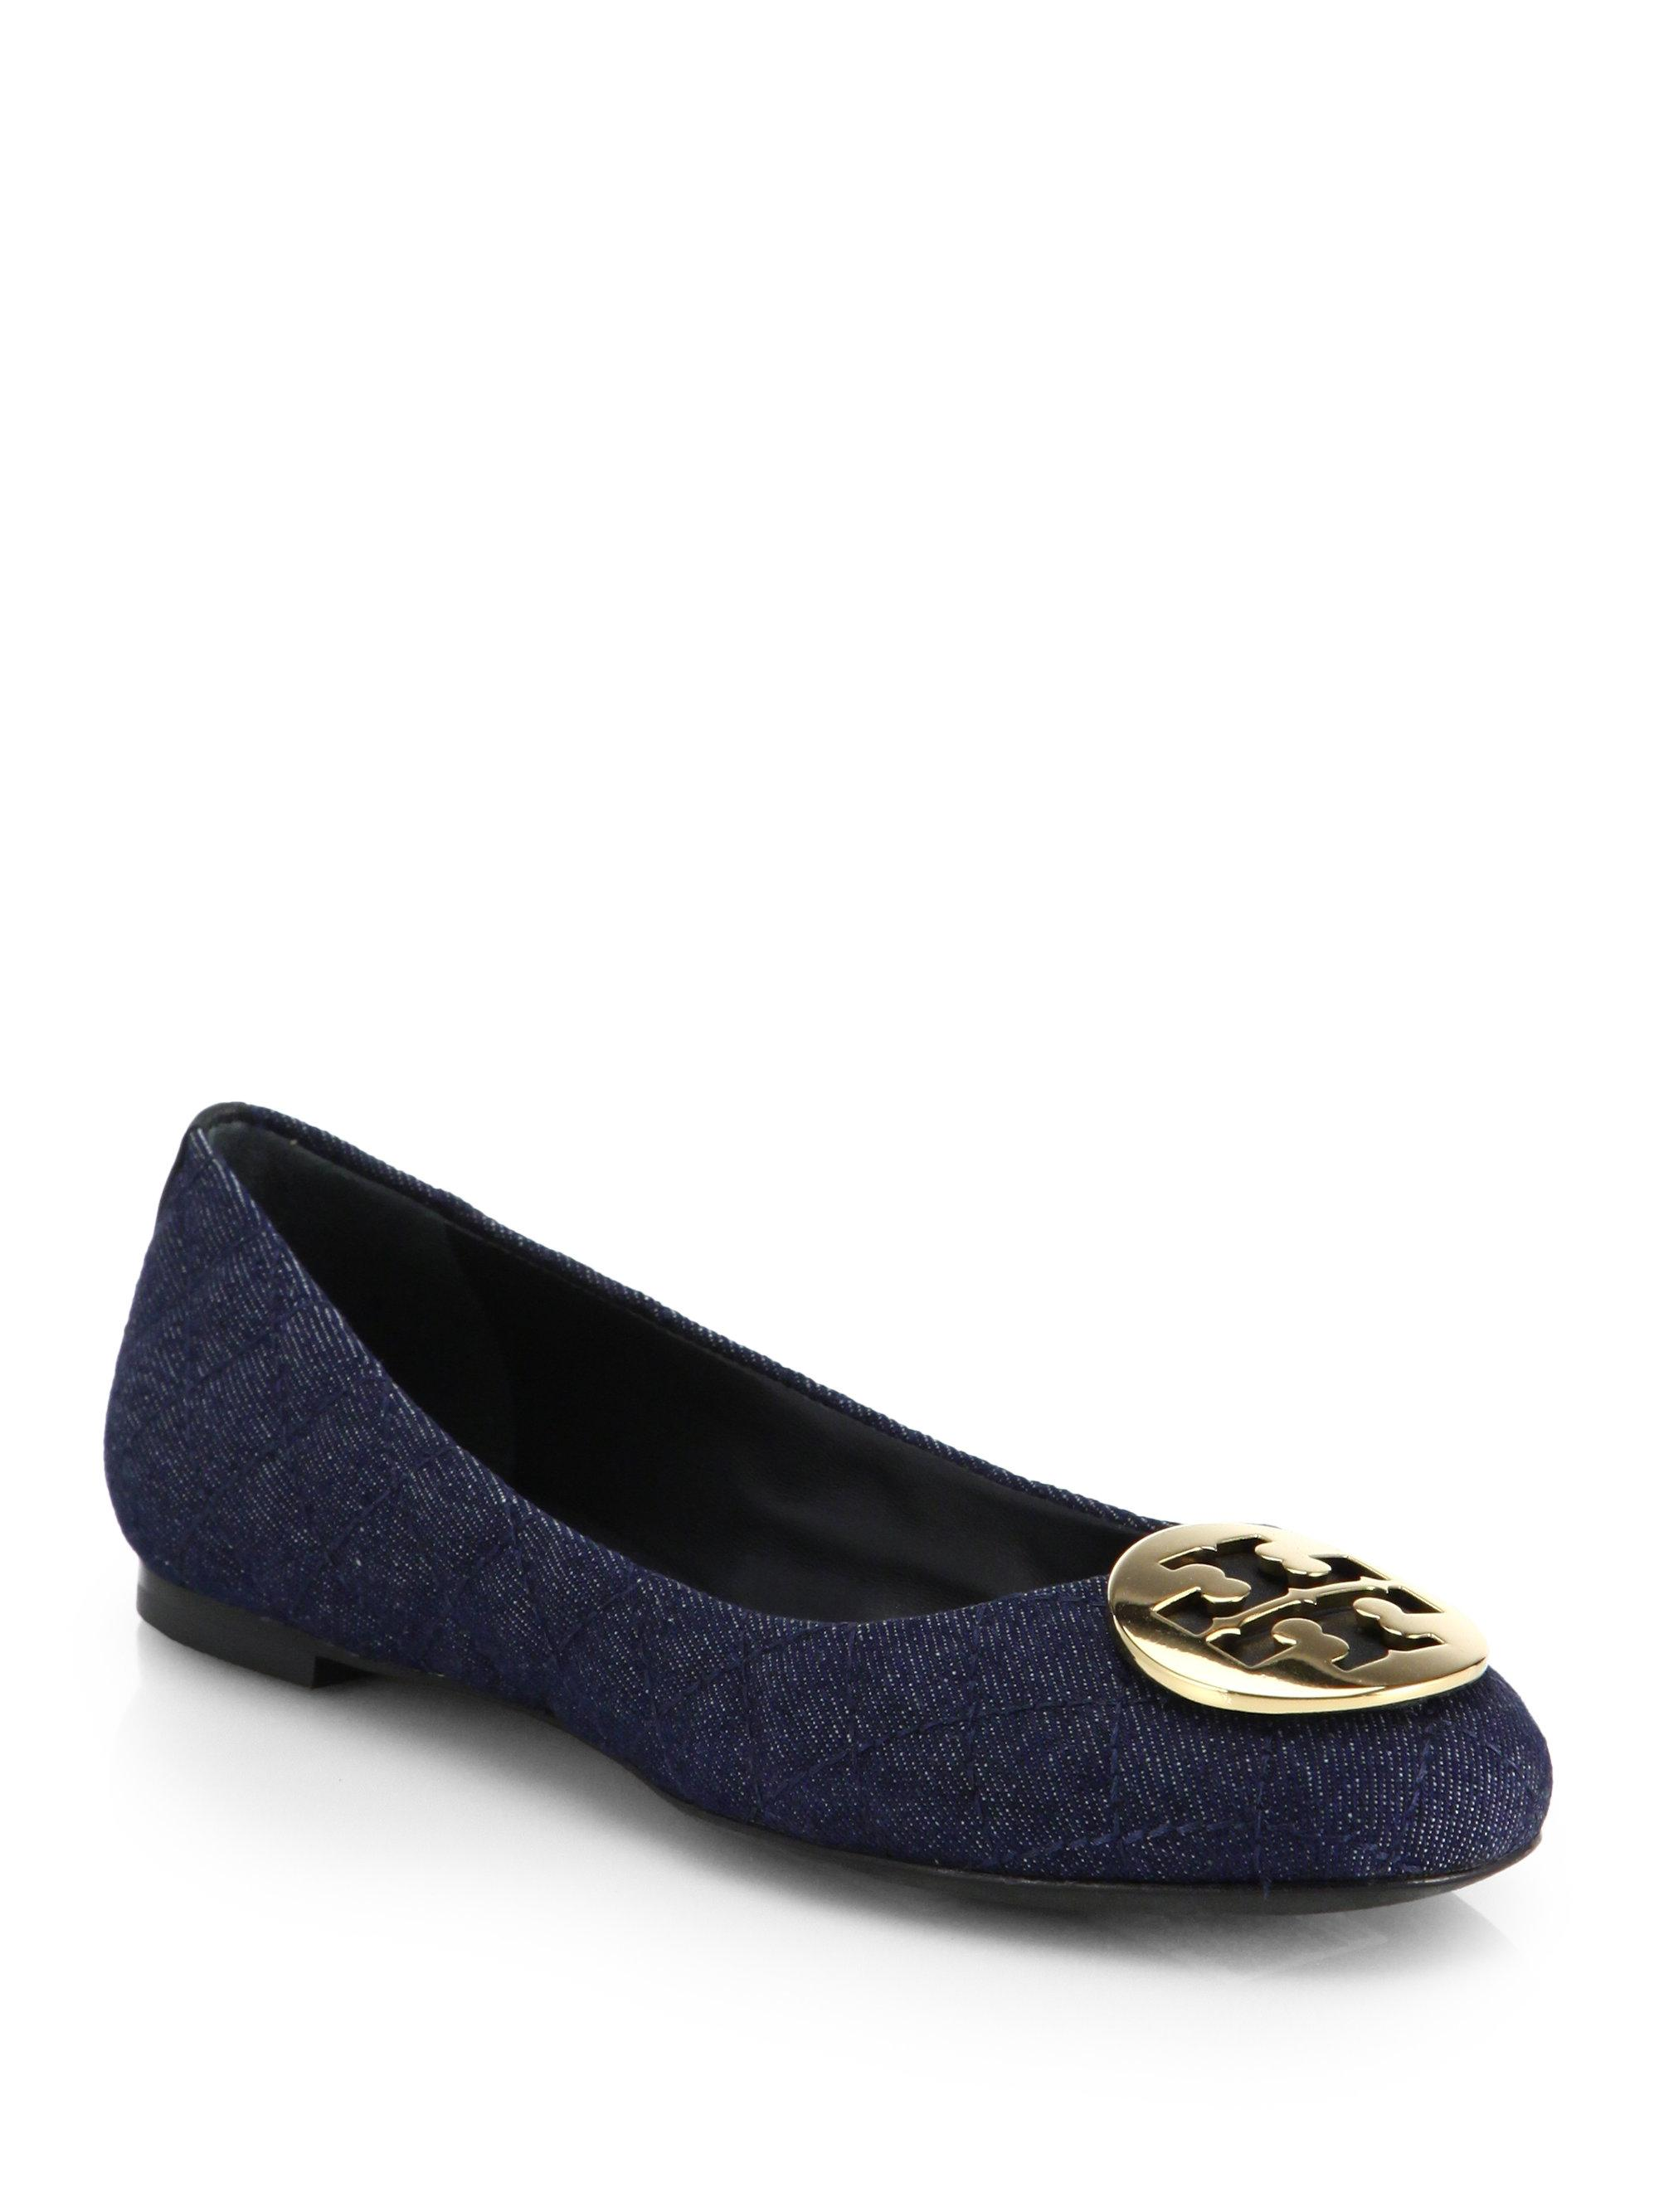 6be487b3566f Tory Burch Blue Denim Denim Denim New Quinn Quilt Ballet Reva Flats Size US  6.5 Regular (M